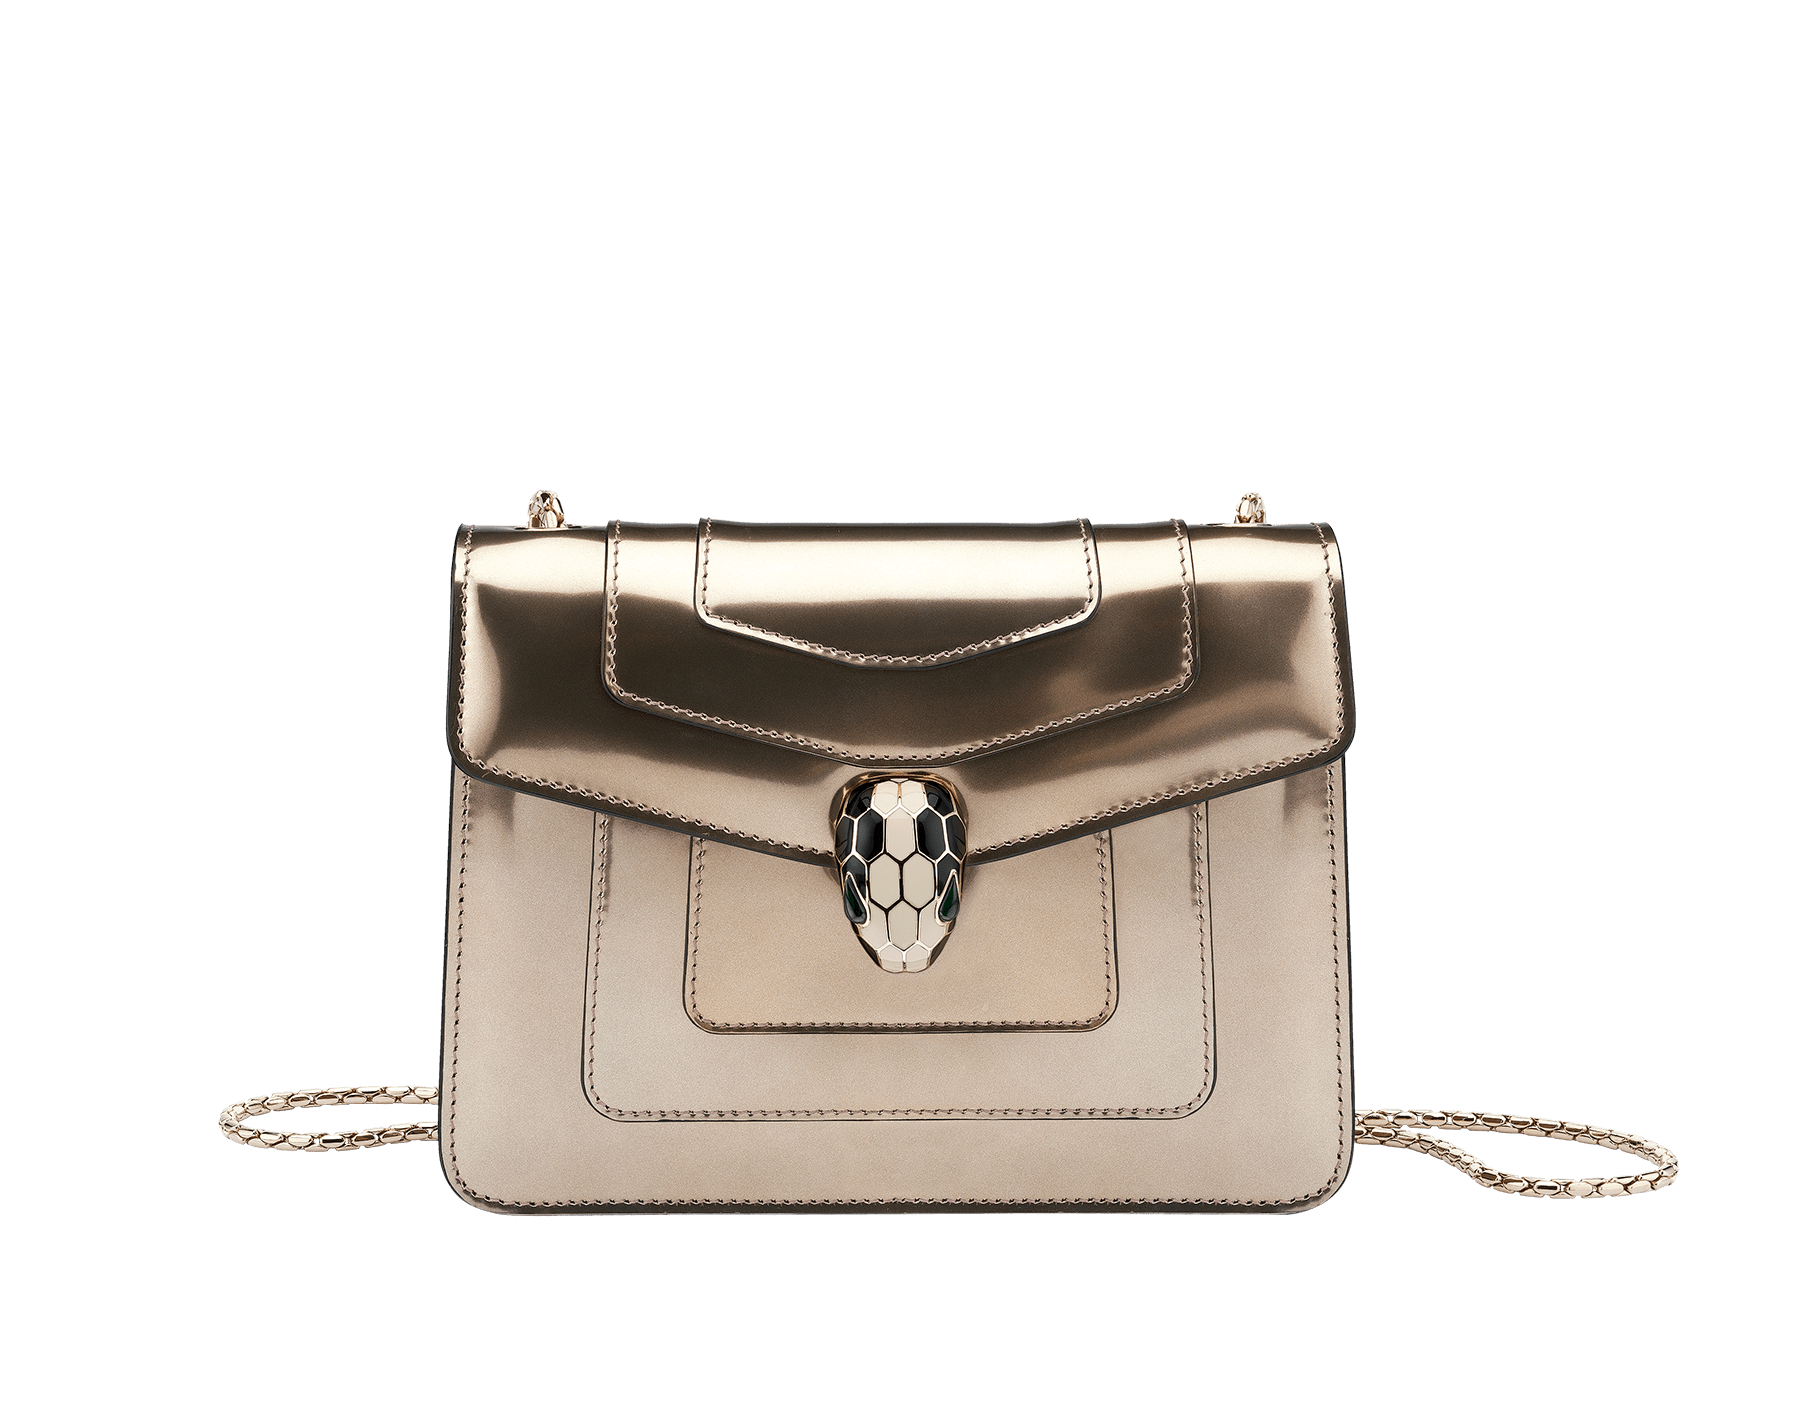 Flap cover bag Serpenti Forever in antique bronze brushed metallic calf leather with brass light gold plated Serpenti head closure in black and white enamel with eyes in green malachite. 39485 image 1